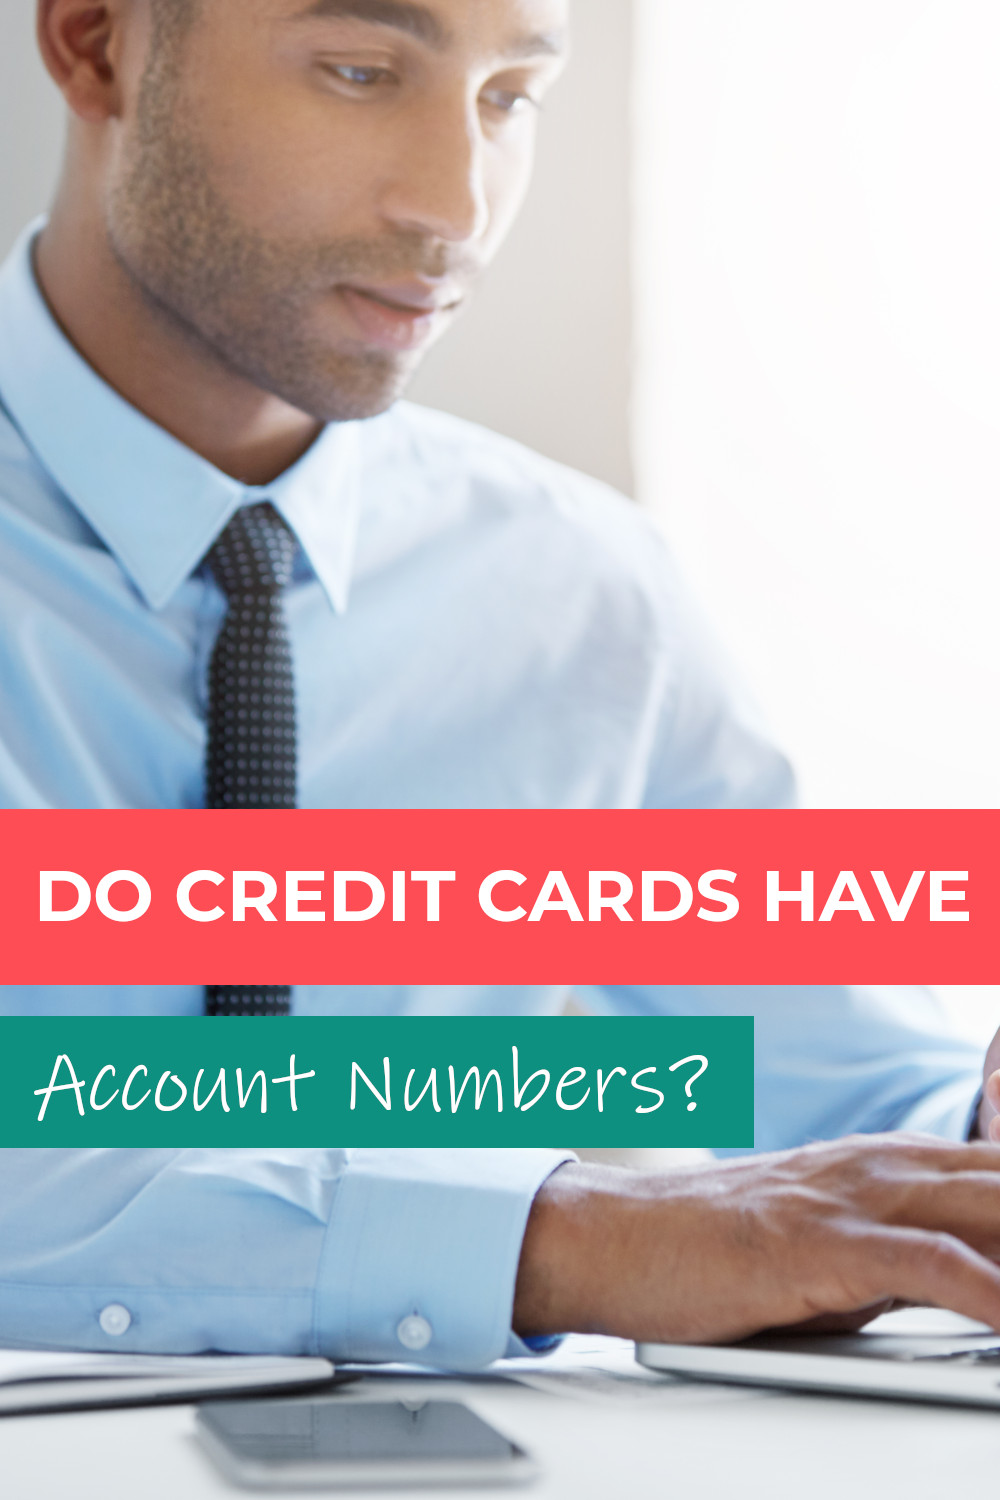 Do credit cards have account numbers?